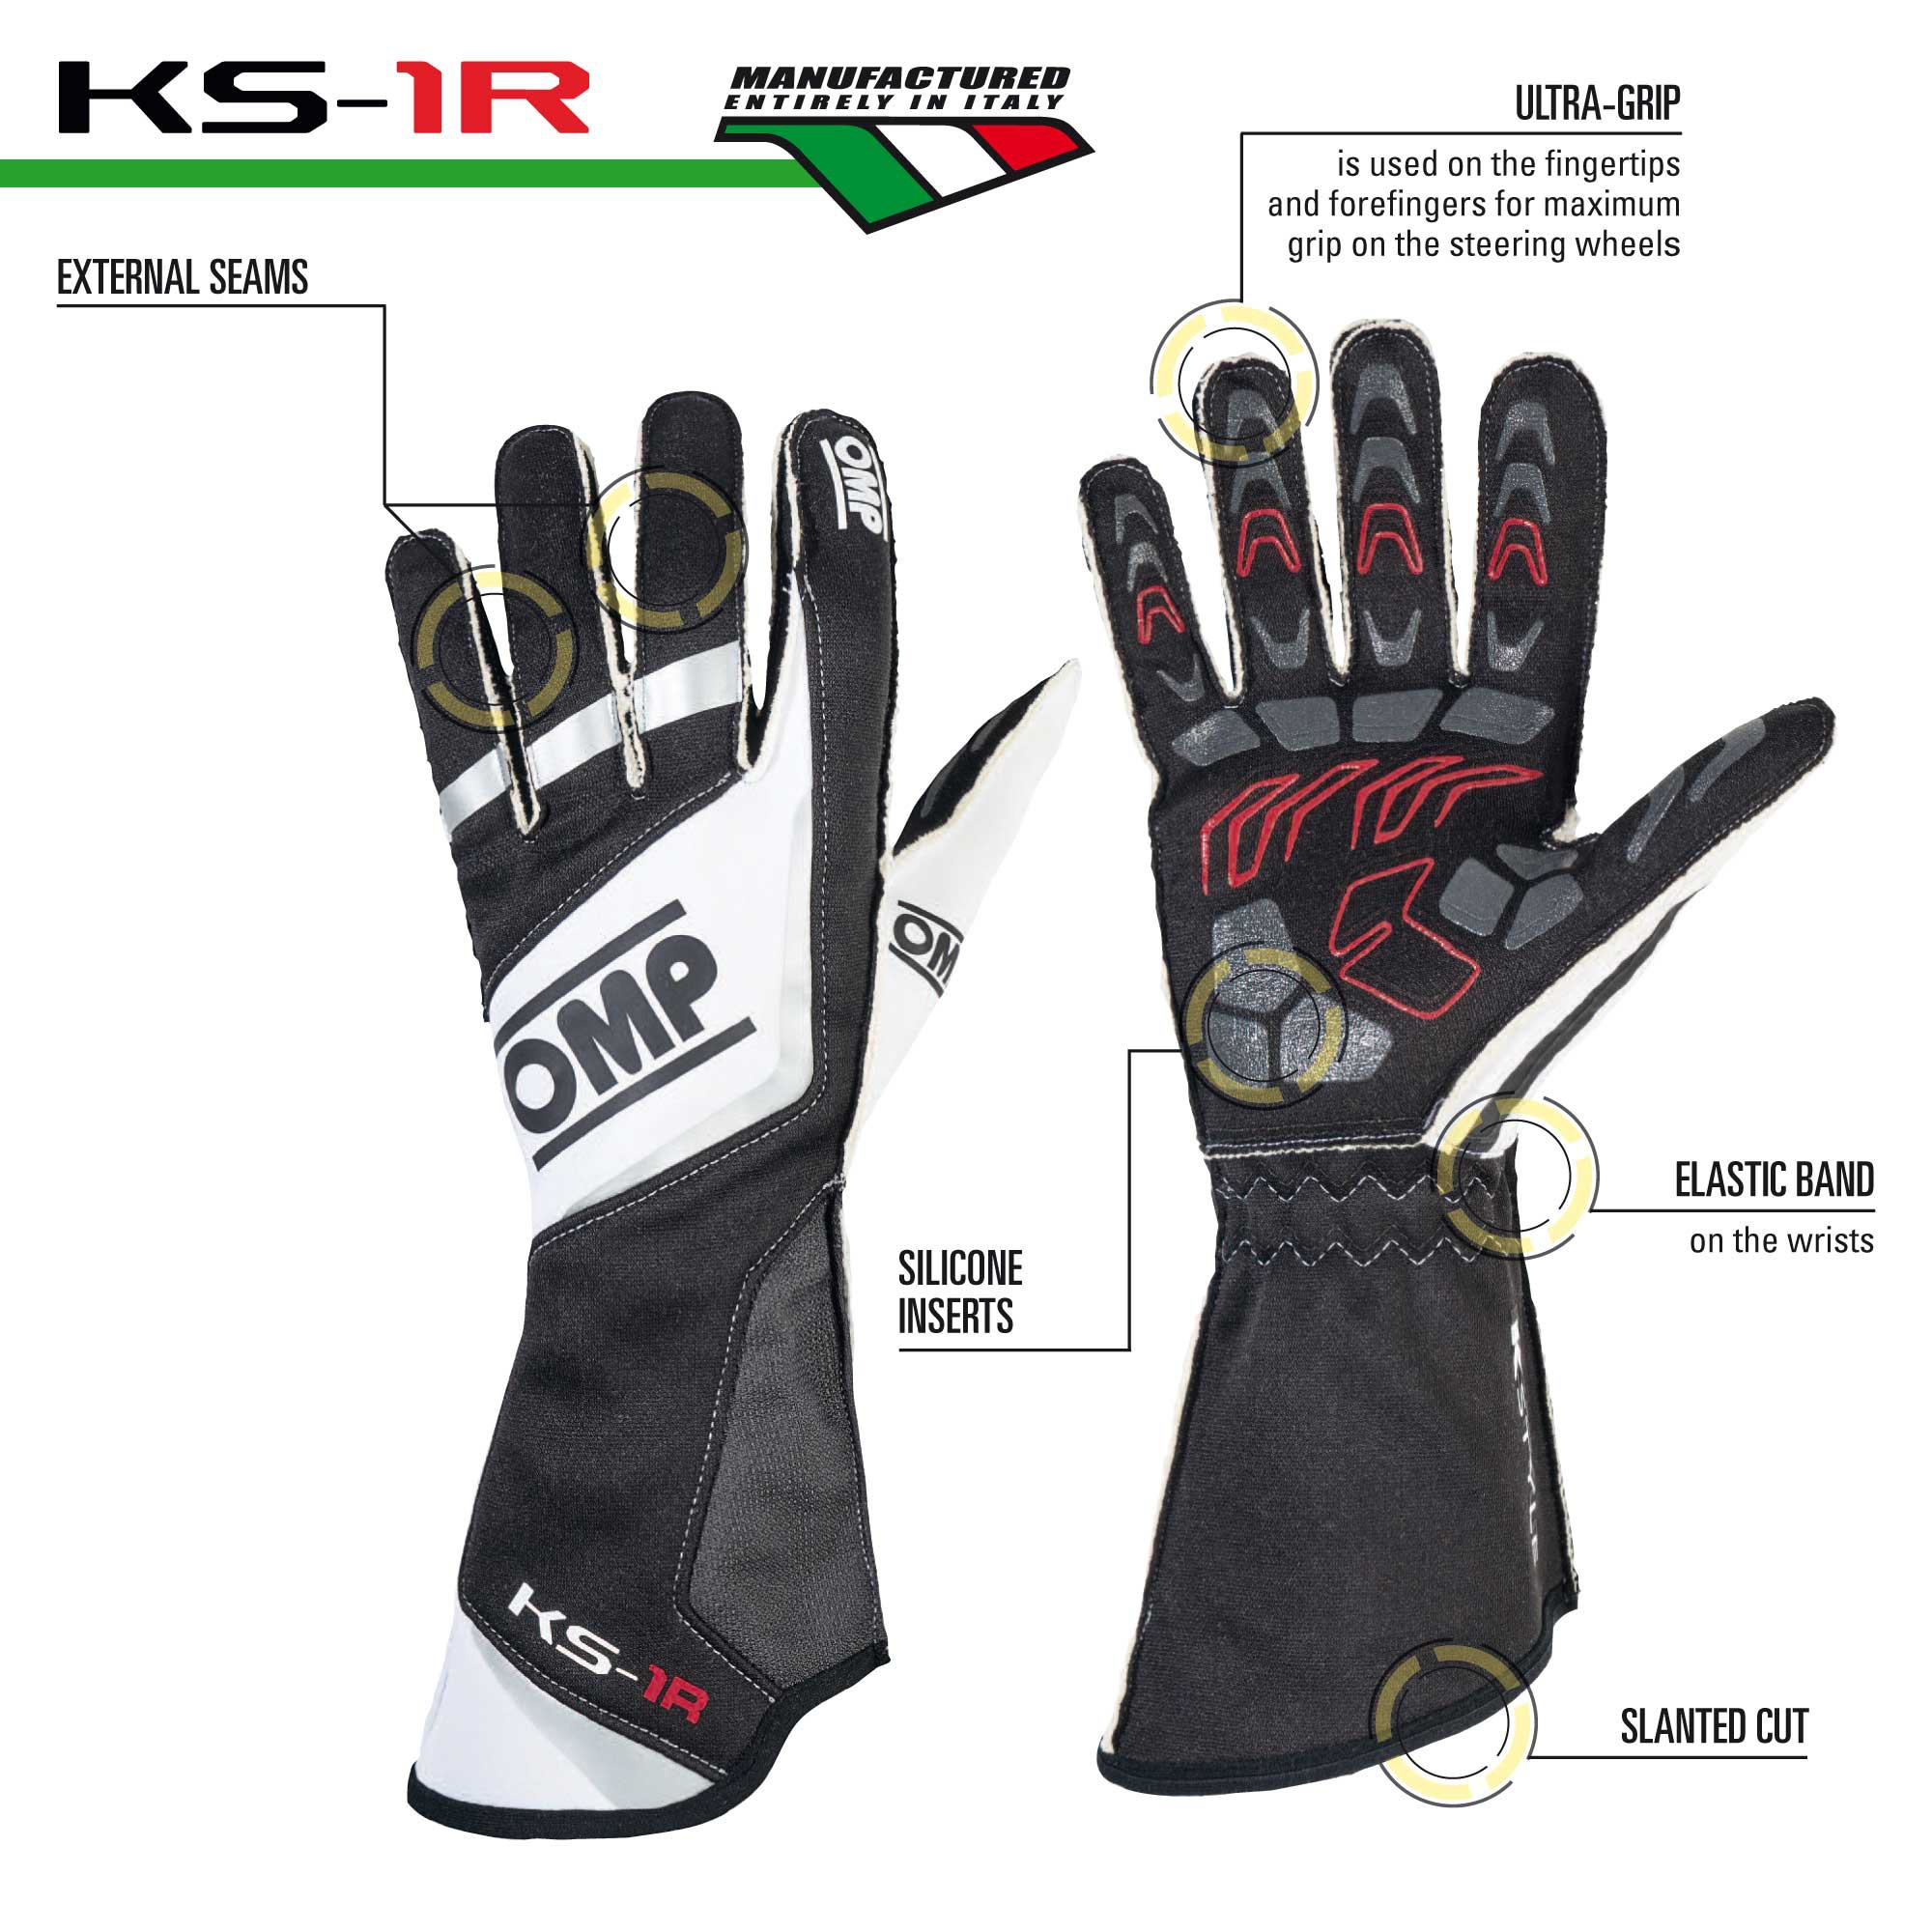 Top karting gloves - KS-1R GLOVES